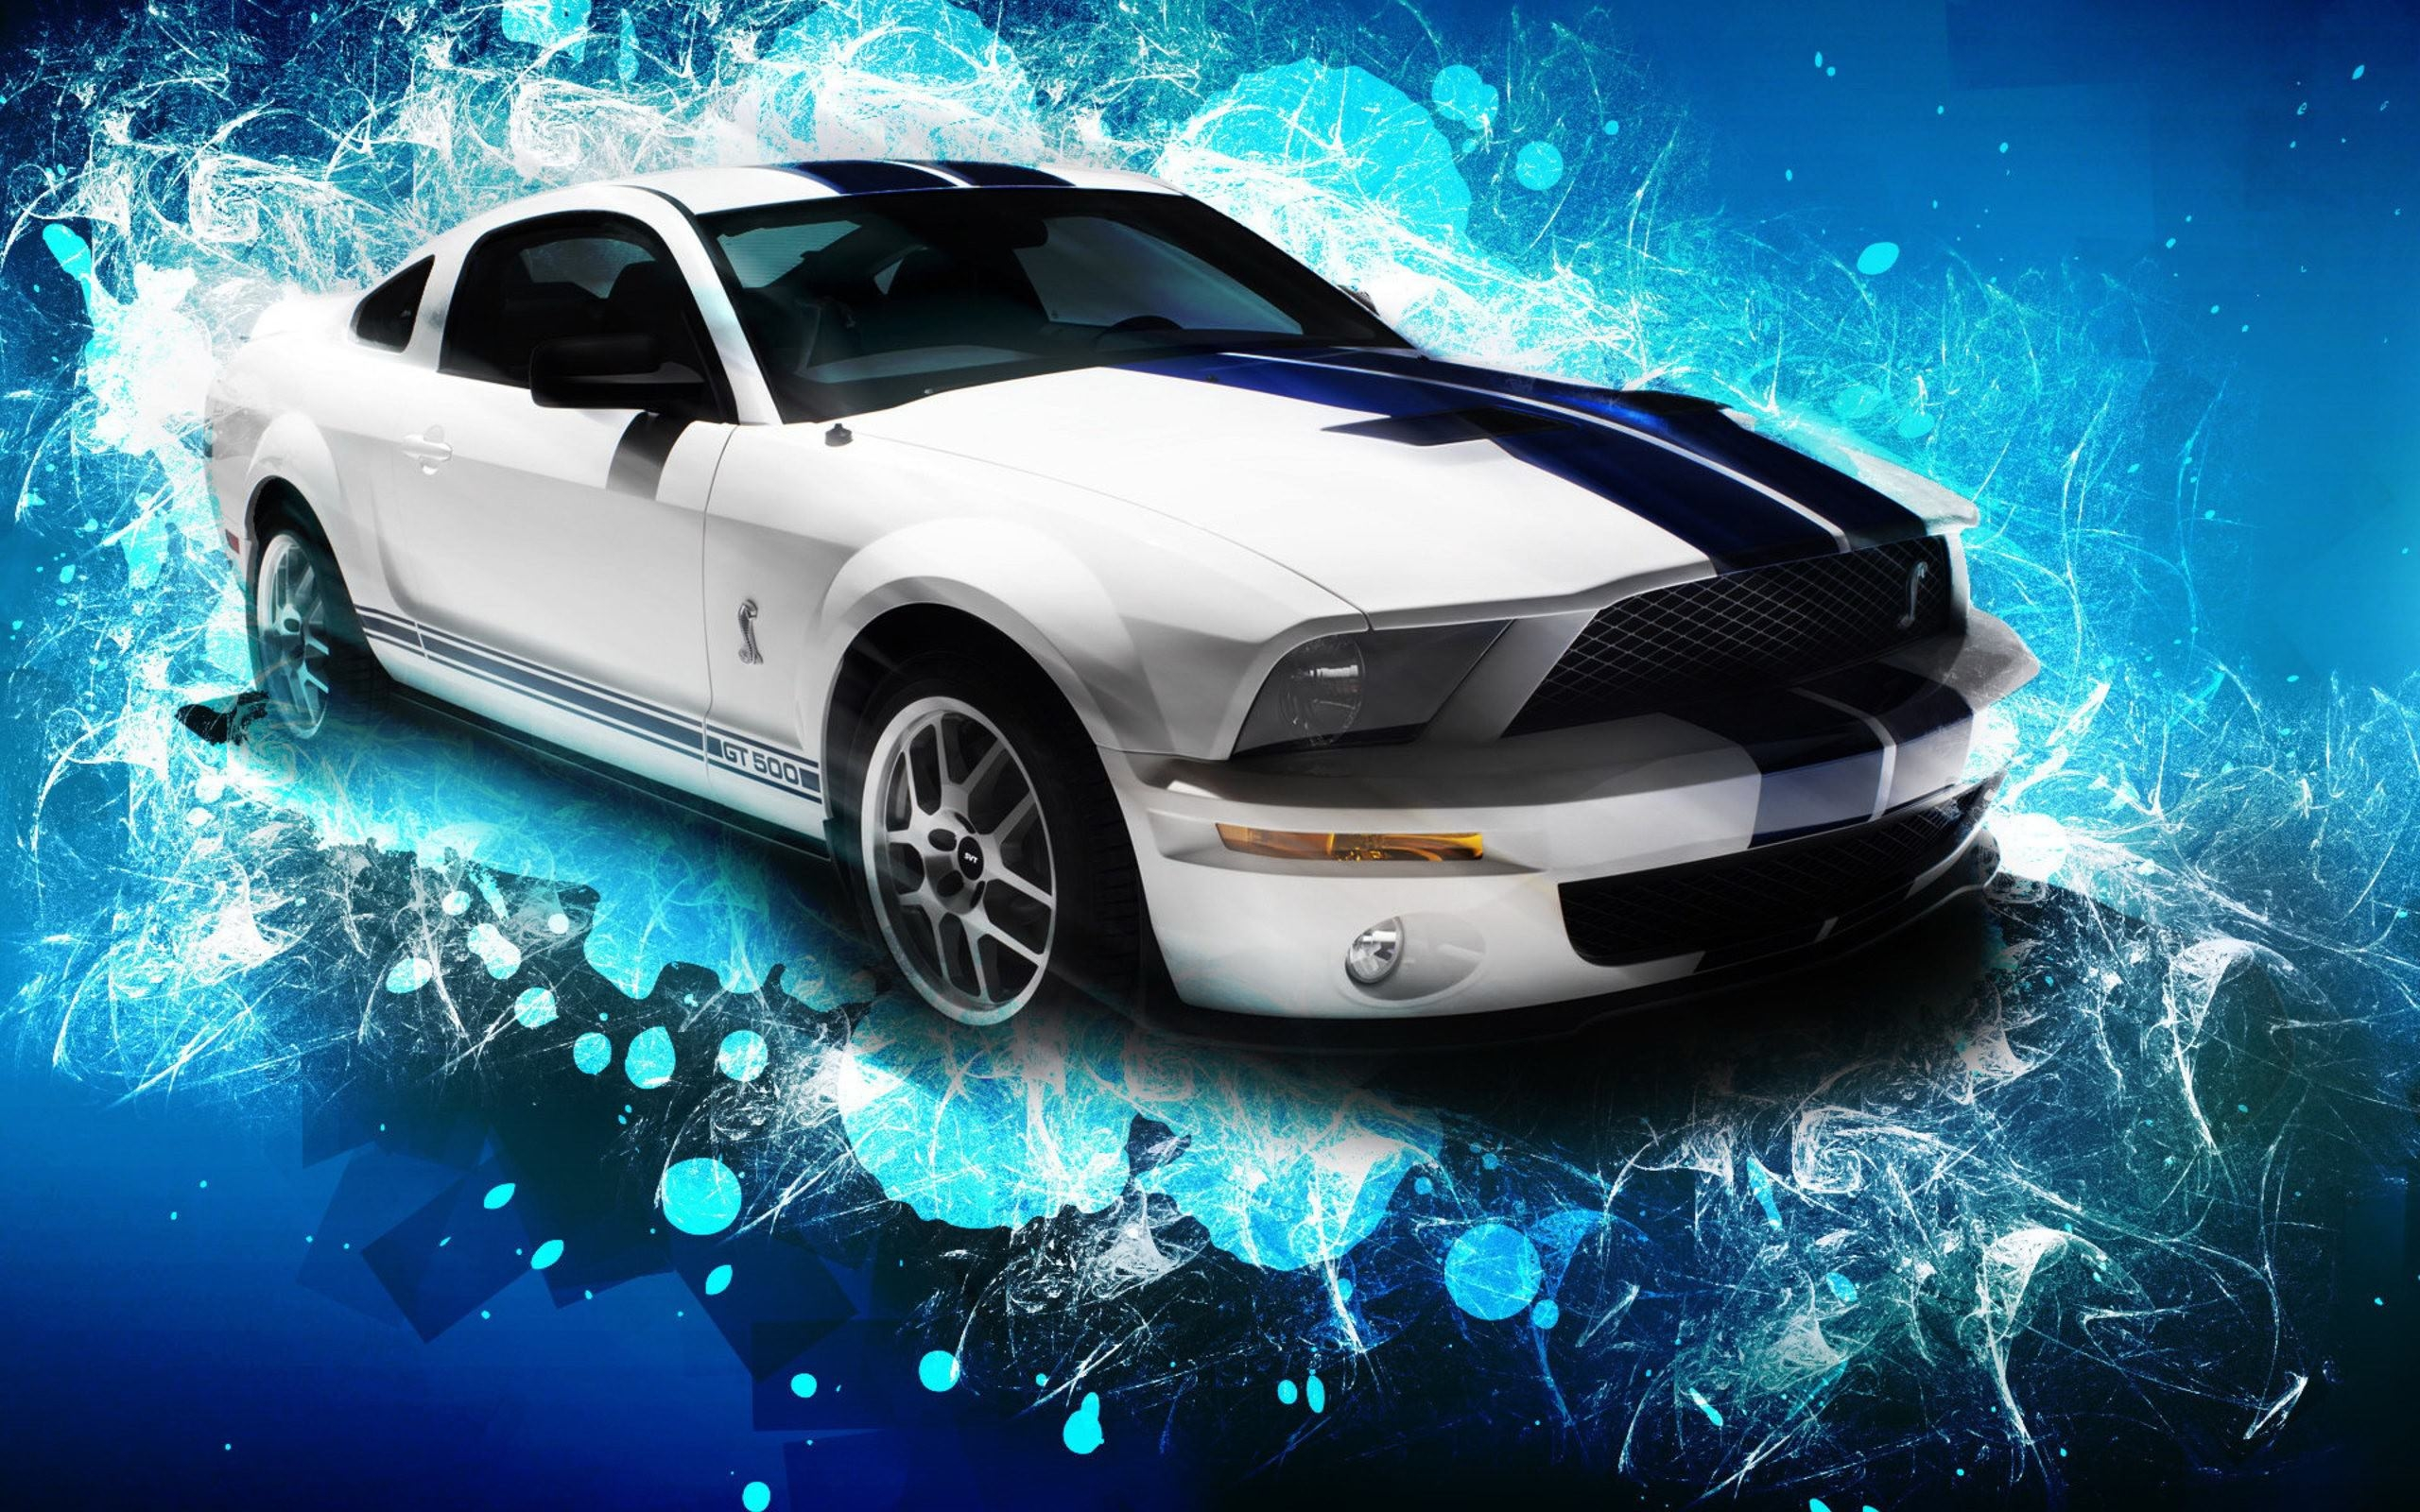 cars-wallpapers-hd-widescreen